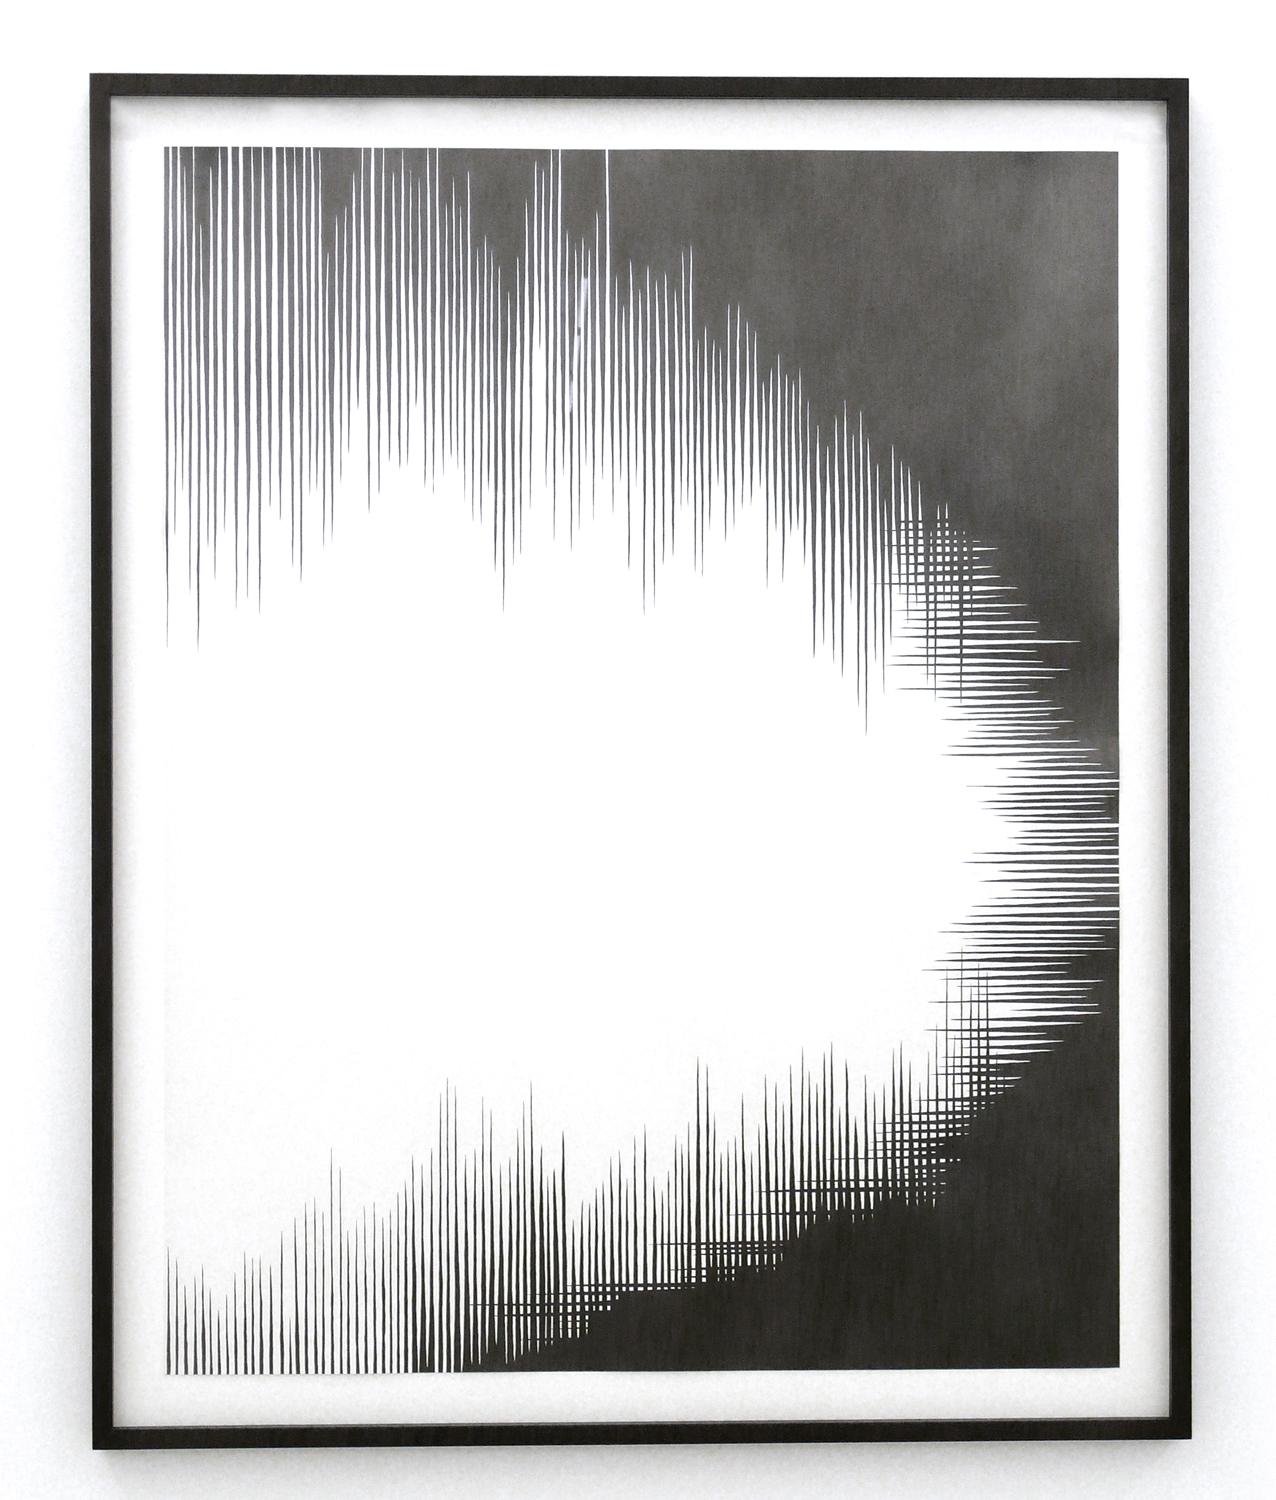 dust l  , 2011, pencil on paper, 110 x 86cm      hyle, 2011, Lullin + Ferrari, Zürichv